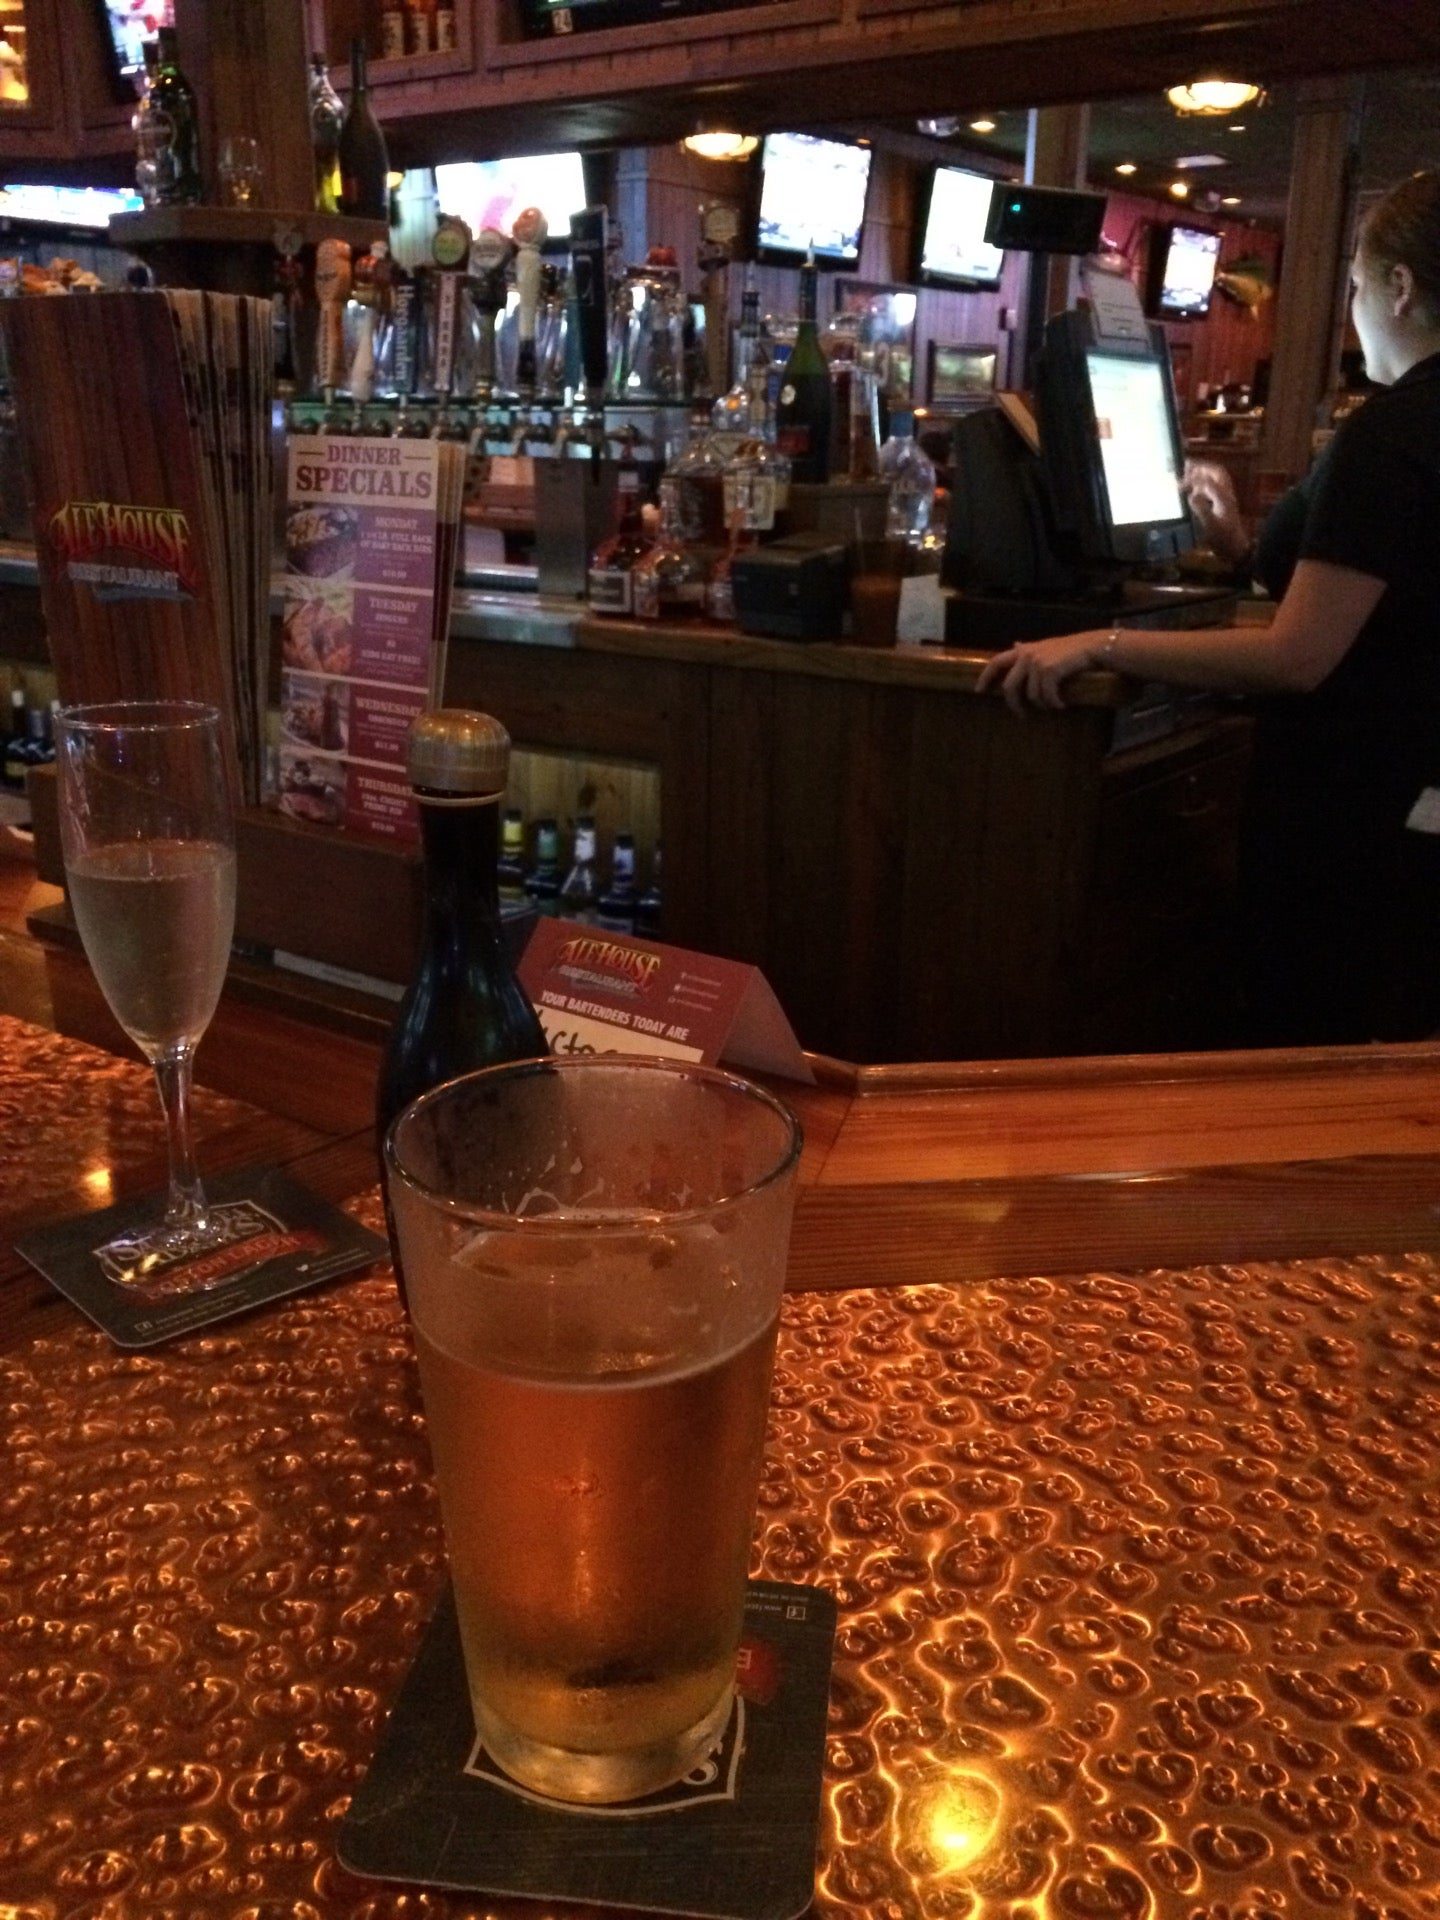 Coral Gables Ale House, alcohol, bar, beer, coral gables, drinks, liquor, miller, sports bar,bar,food